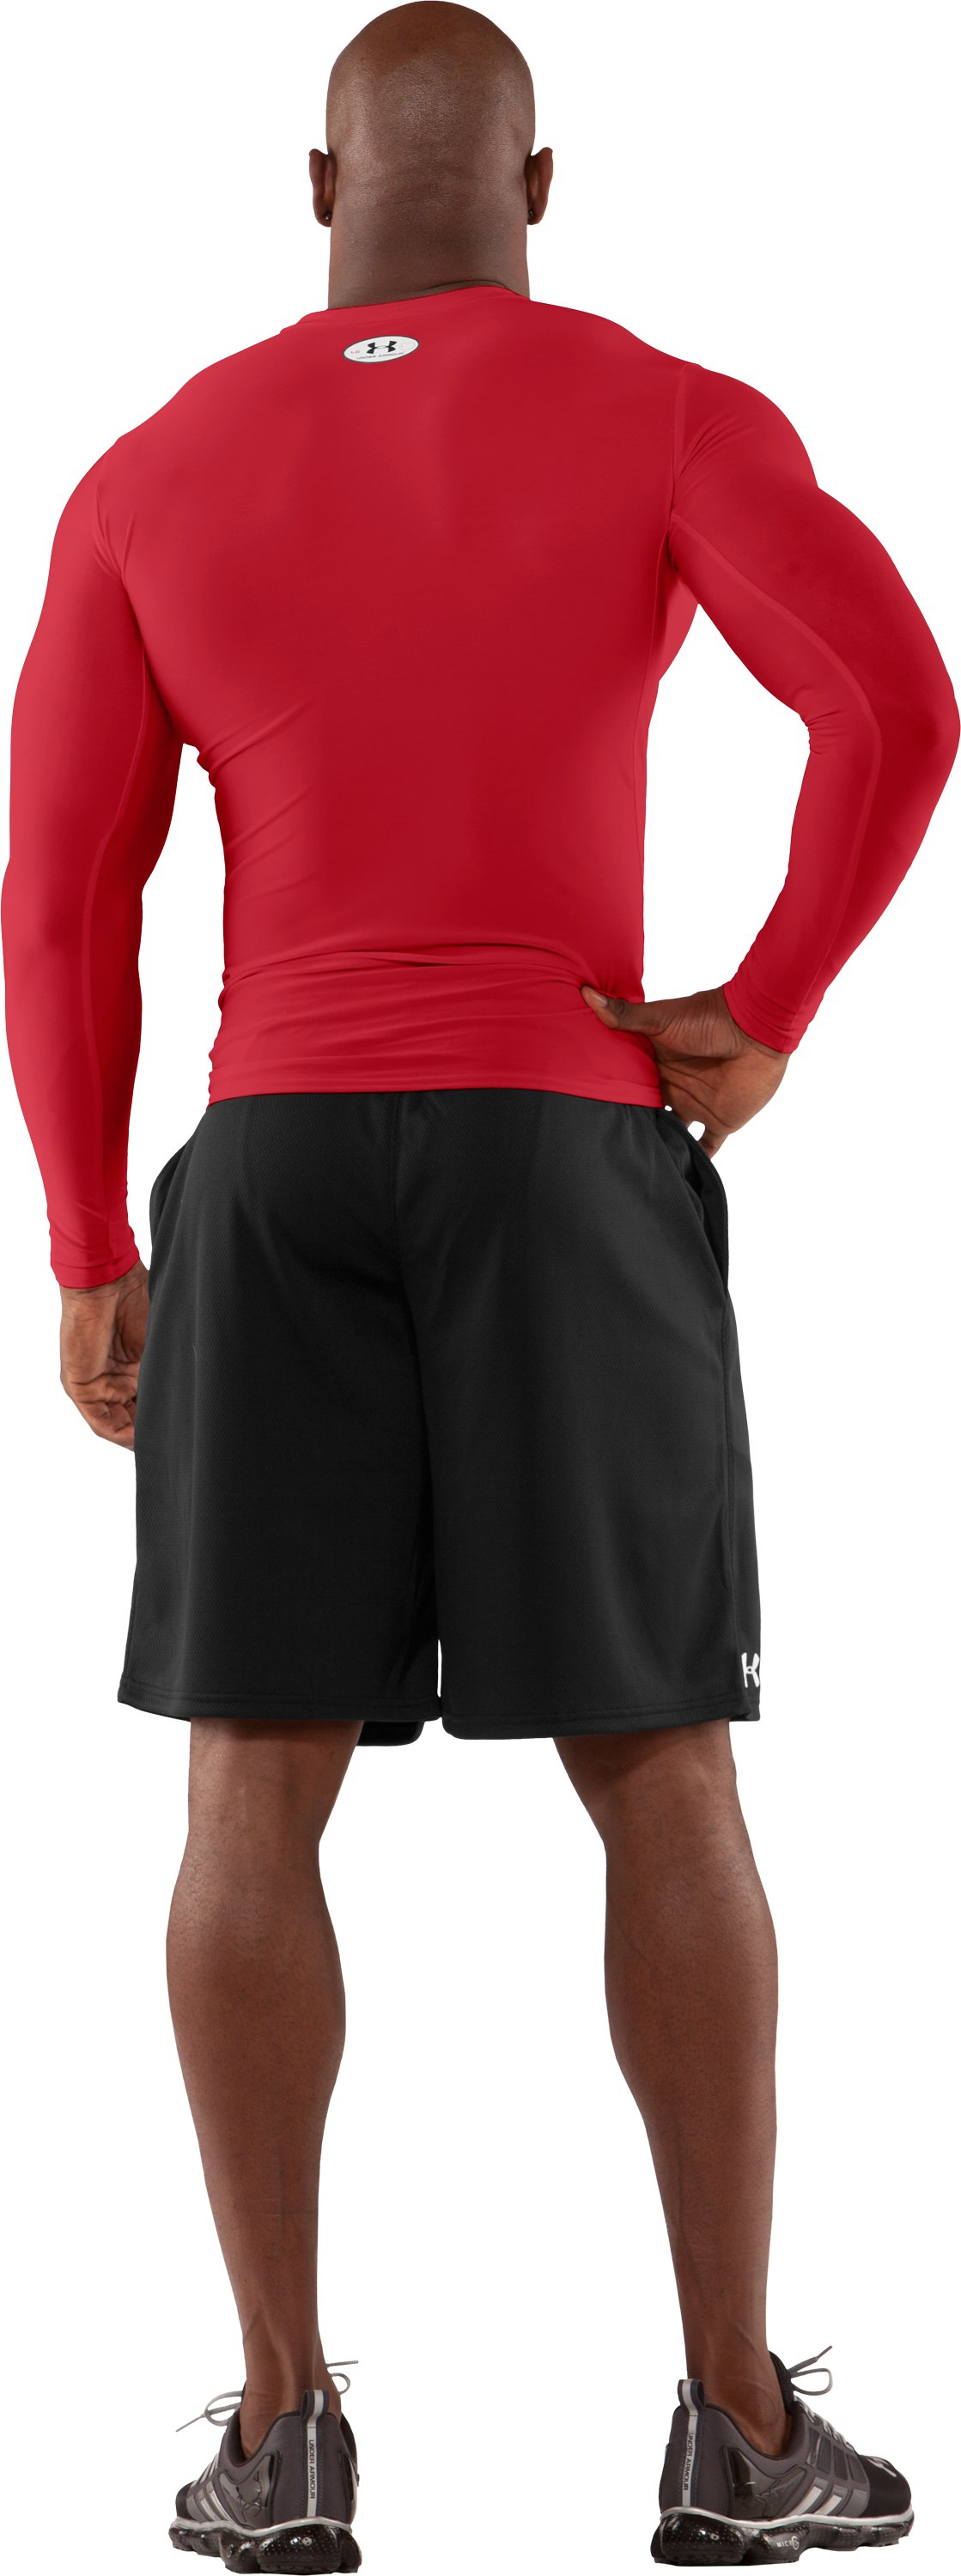 Men's HeatGear® Compression Long Sleeve T-Shirt, Red, Back